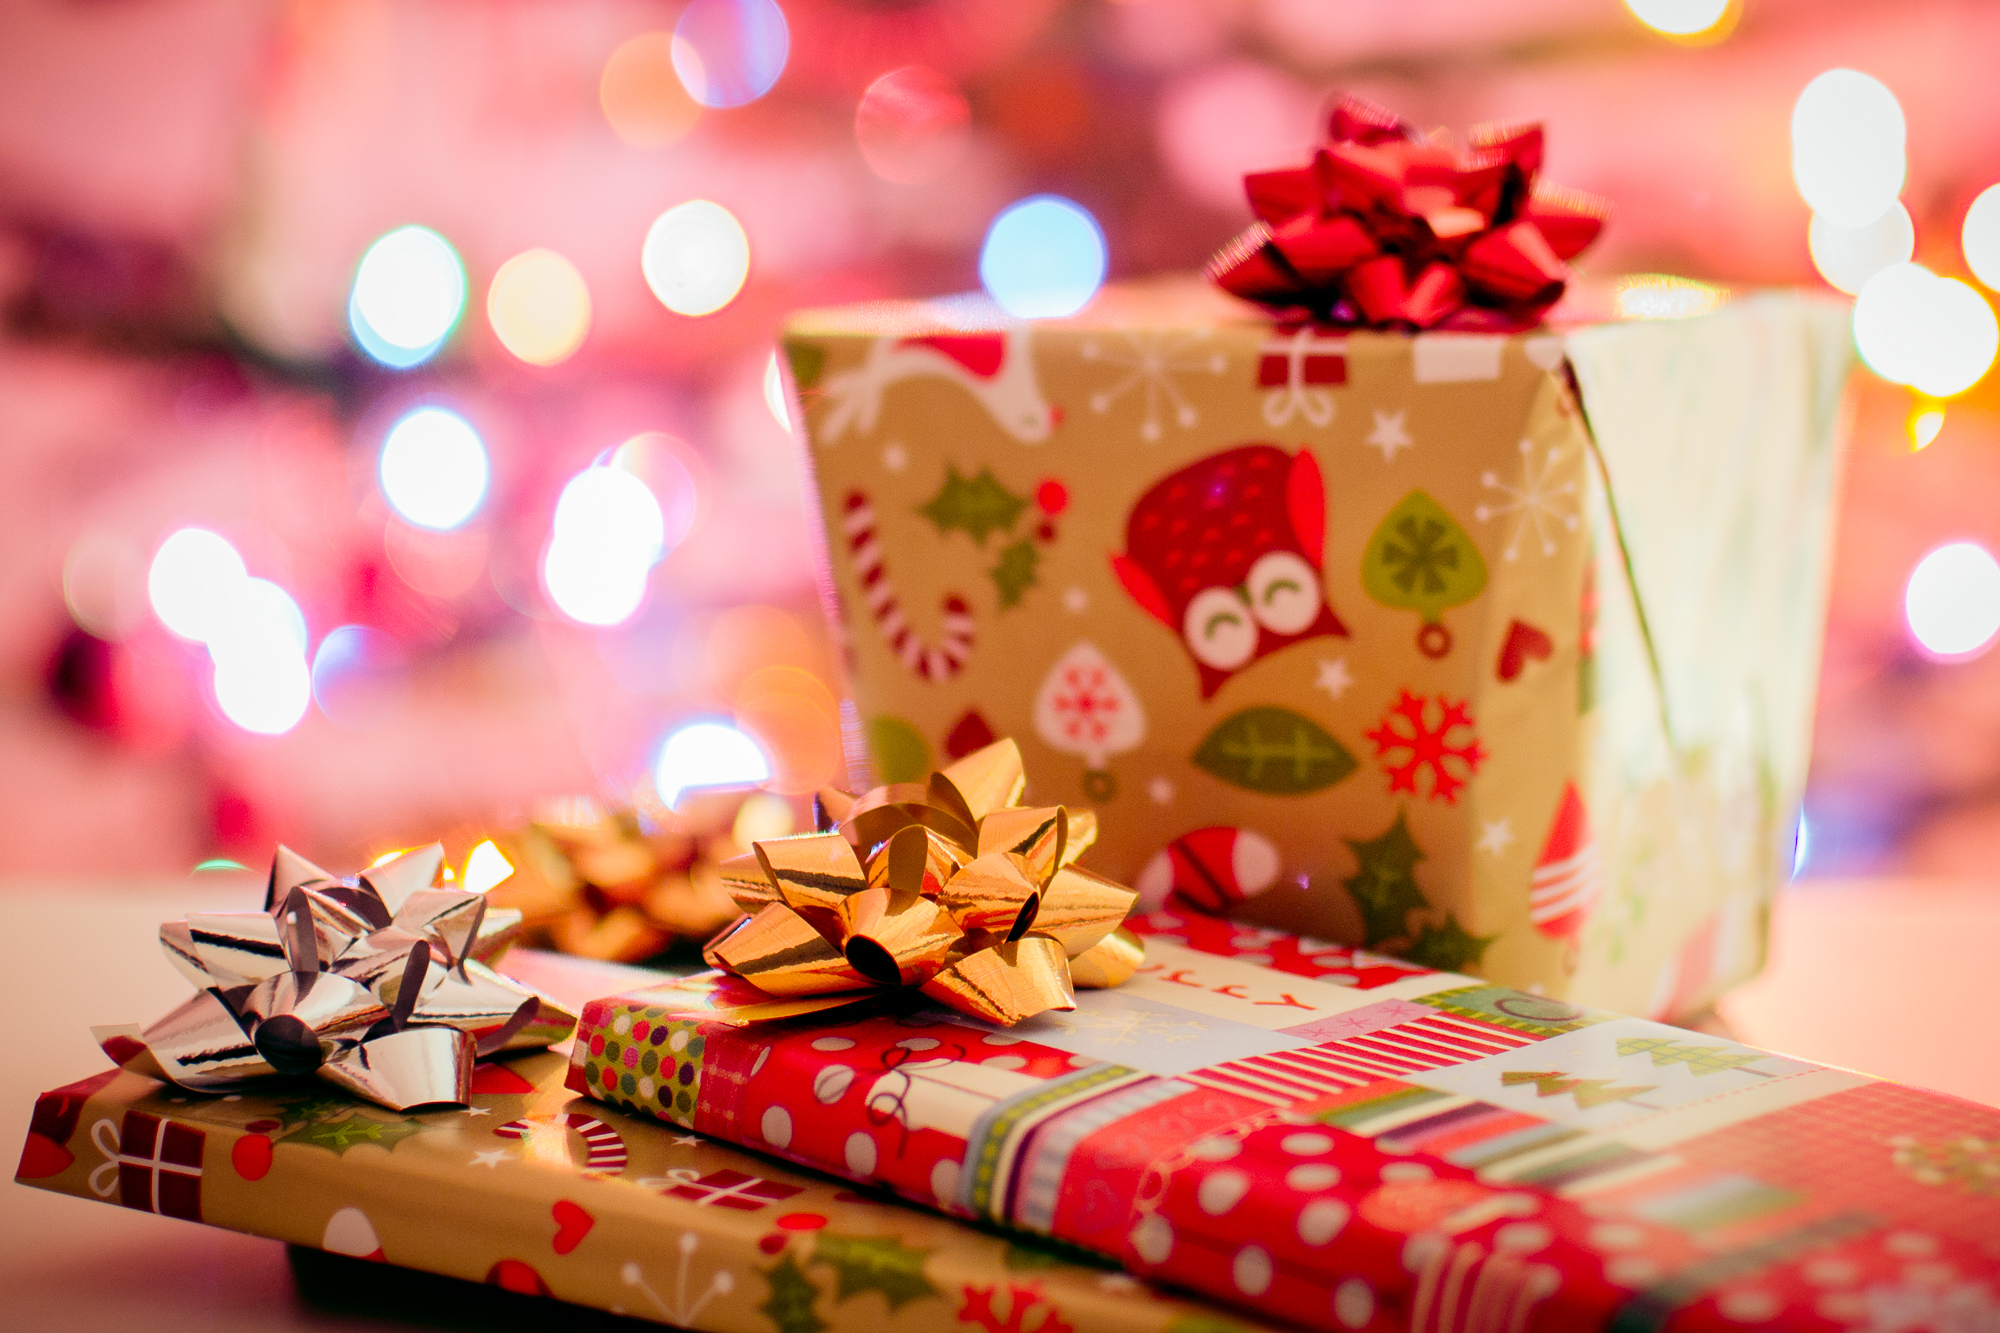 What Did Employees Get For Christmas? | IceNews - Daily News